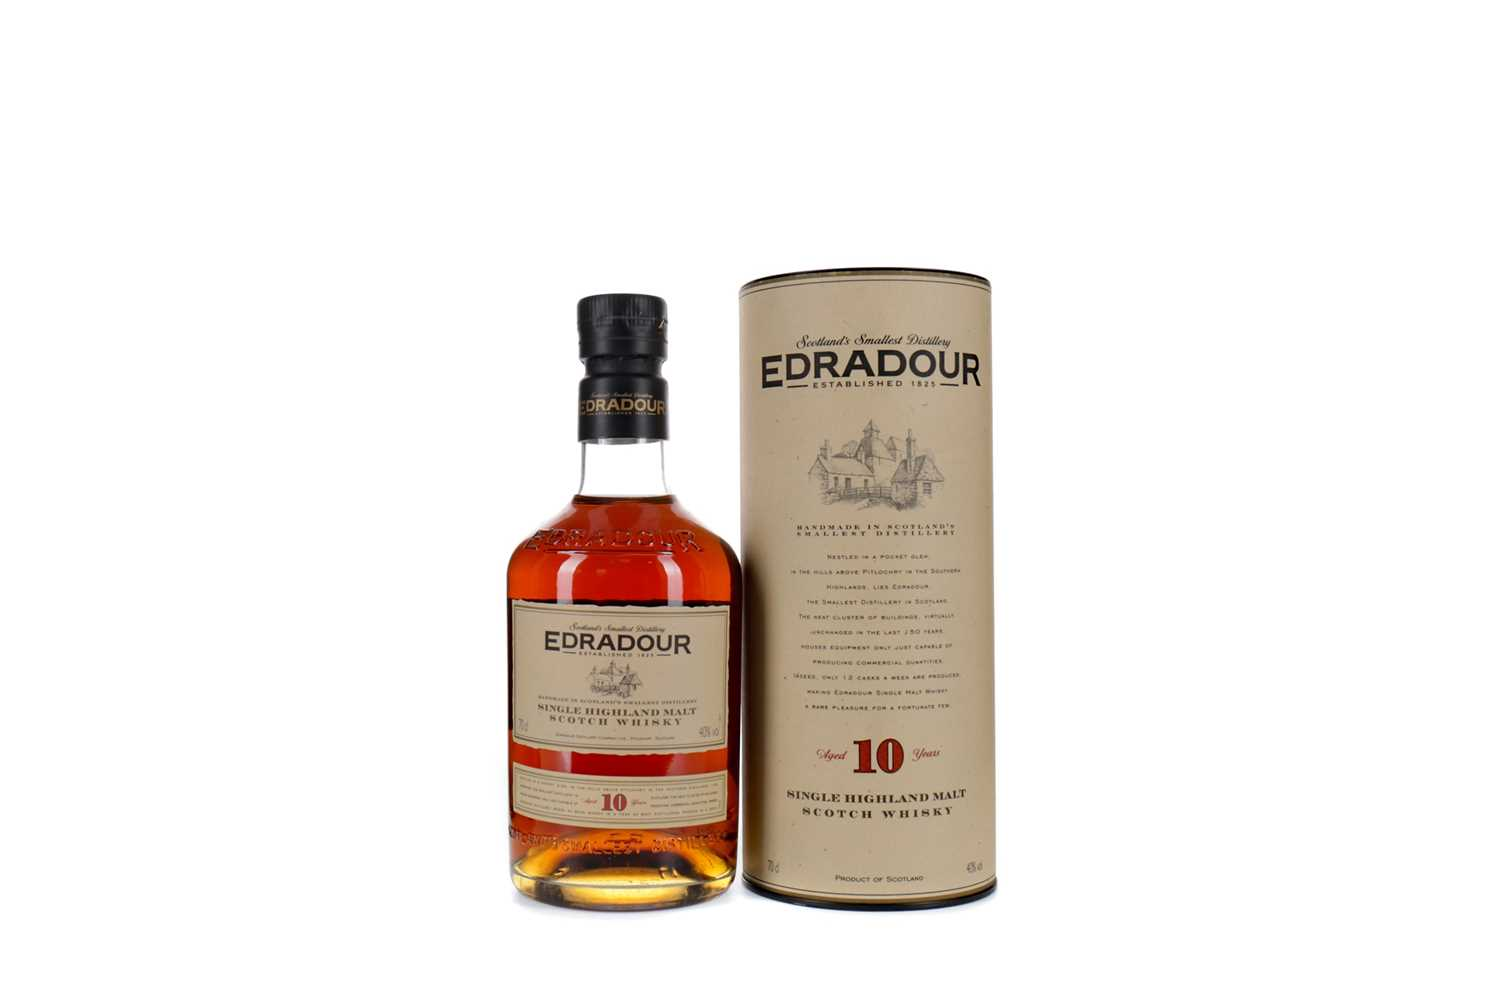 Lot 37 - EDRADOUR AGED 10 YEARS